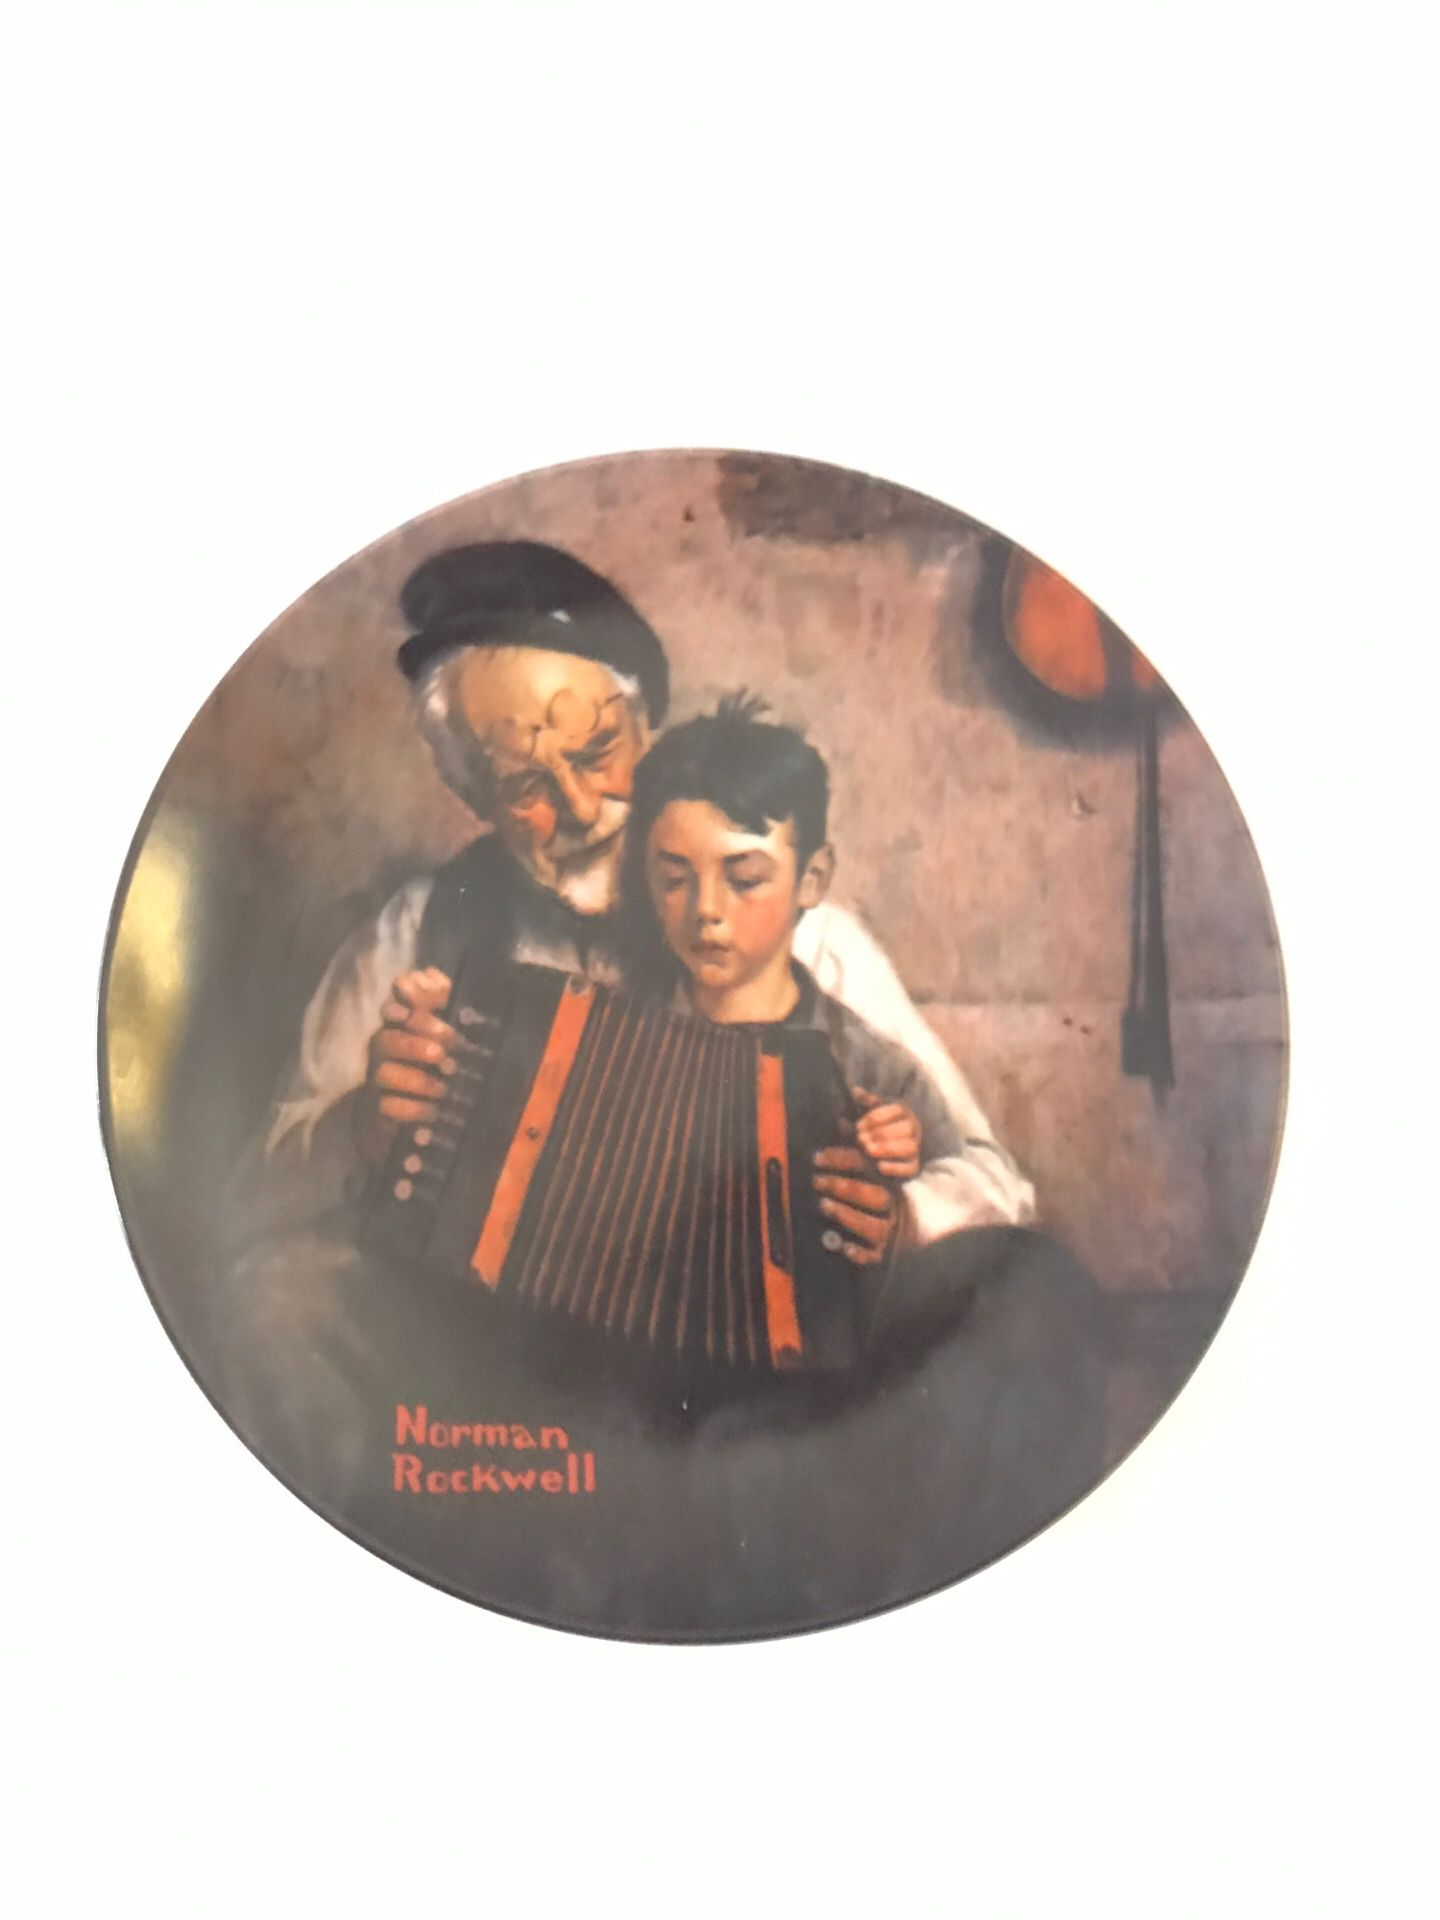 Norman Rockwell's The Music Maker Plate